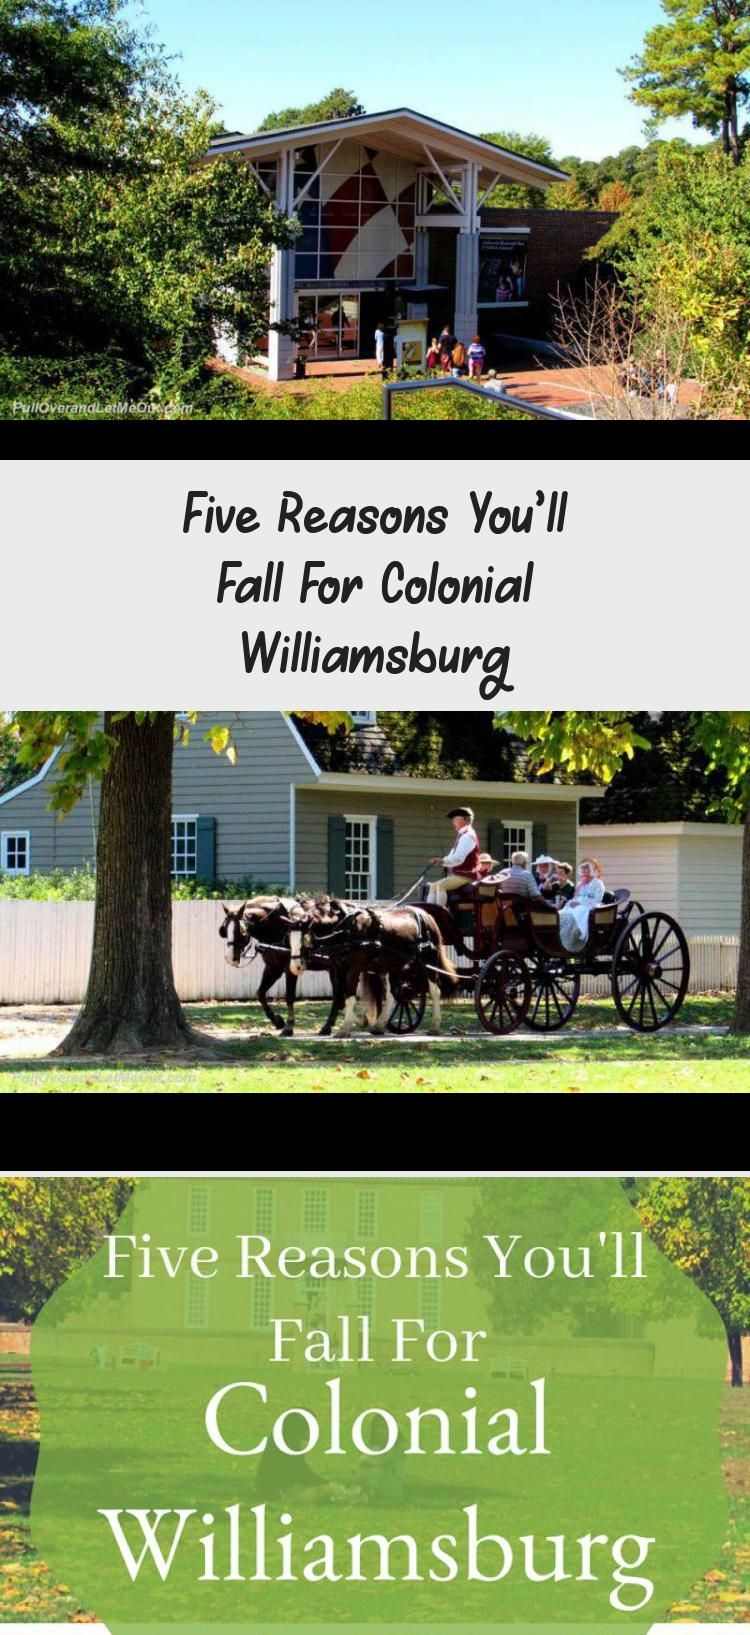 Five Reasons You Ll Fall For Colonial Williamsburg In 2020 Romantic Travel Colonial Williamsburg Romantic Travel Europe